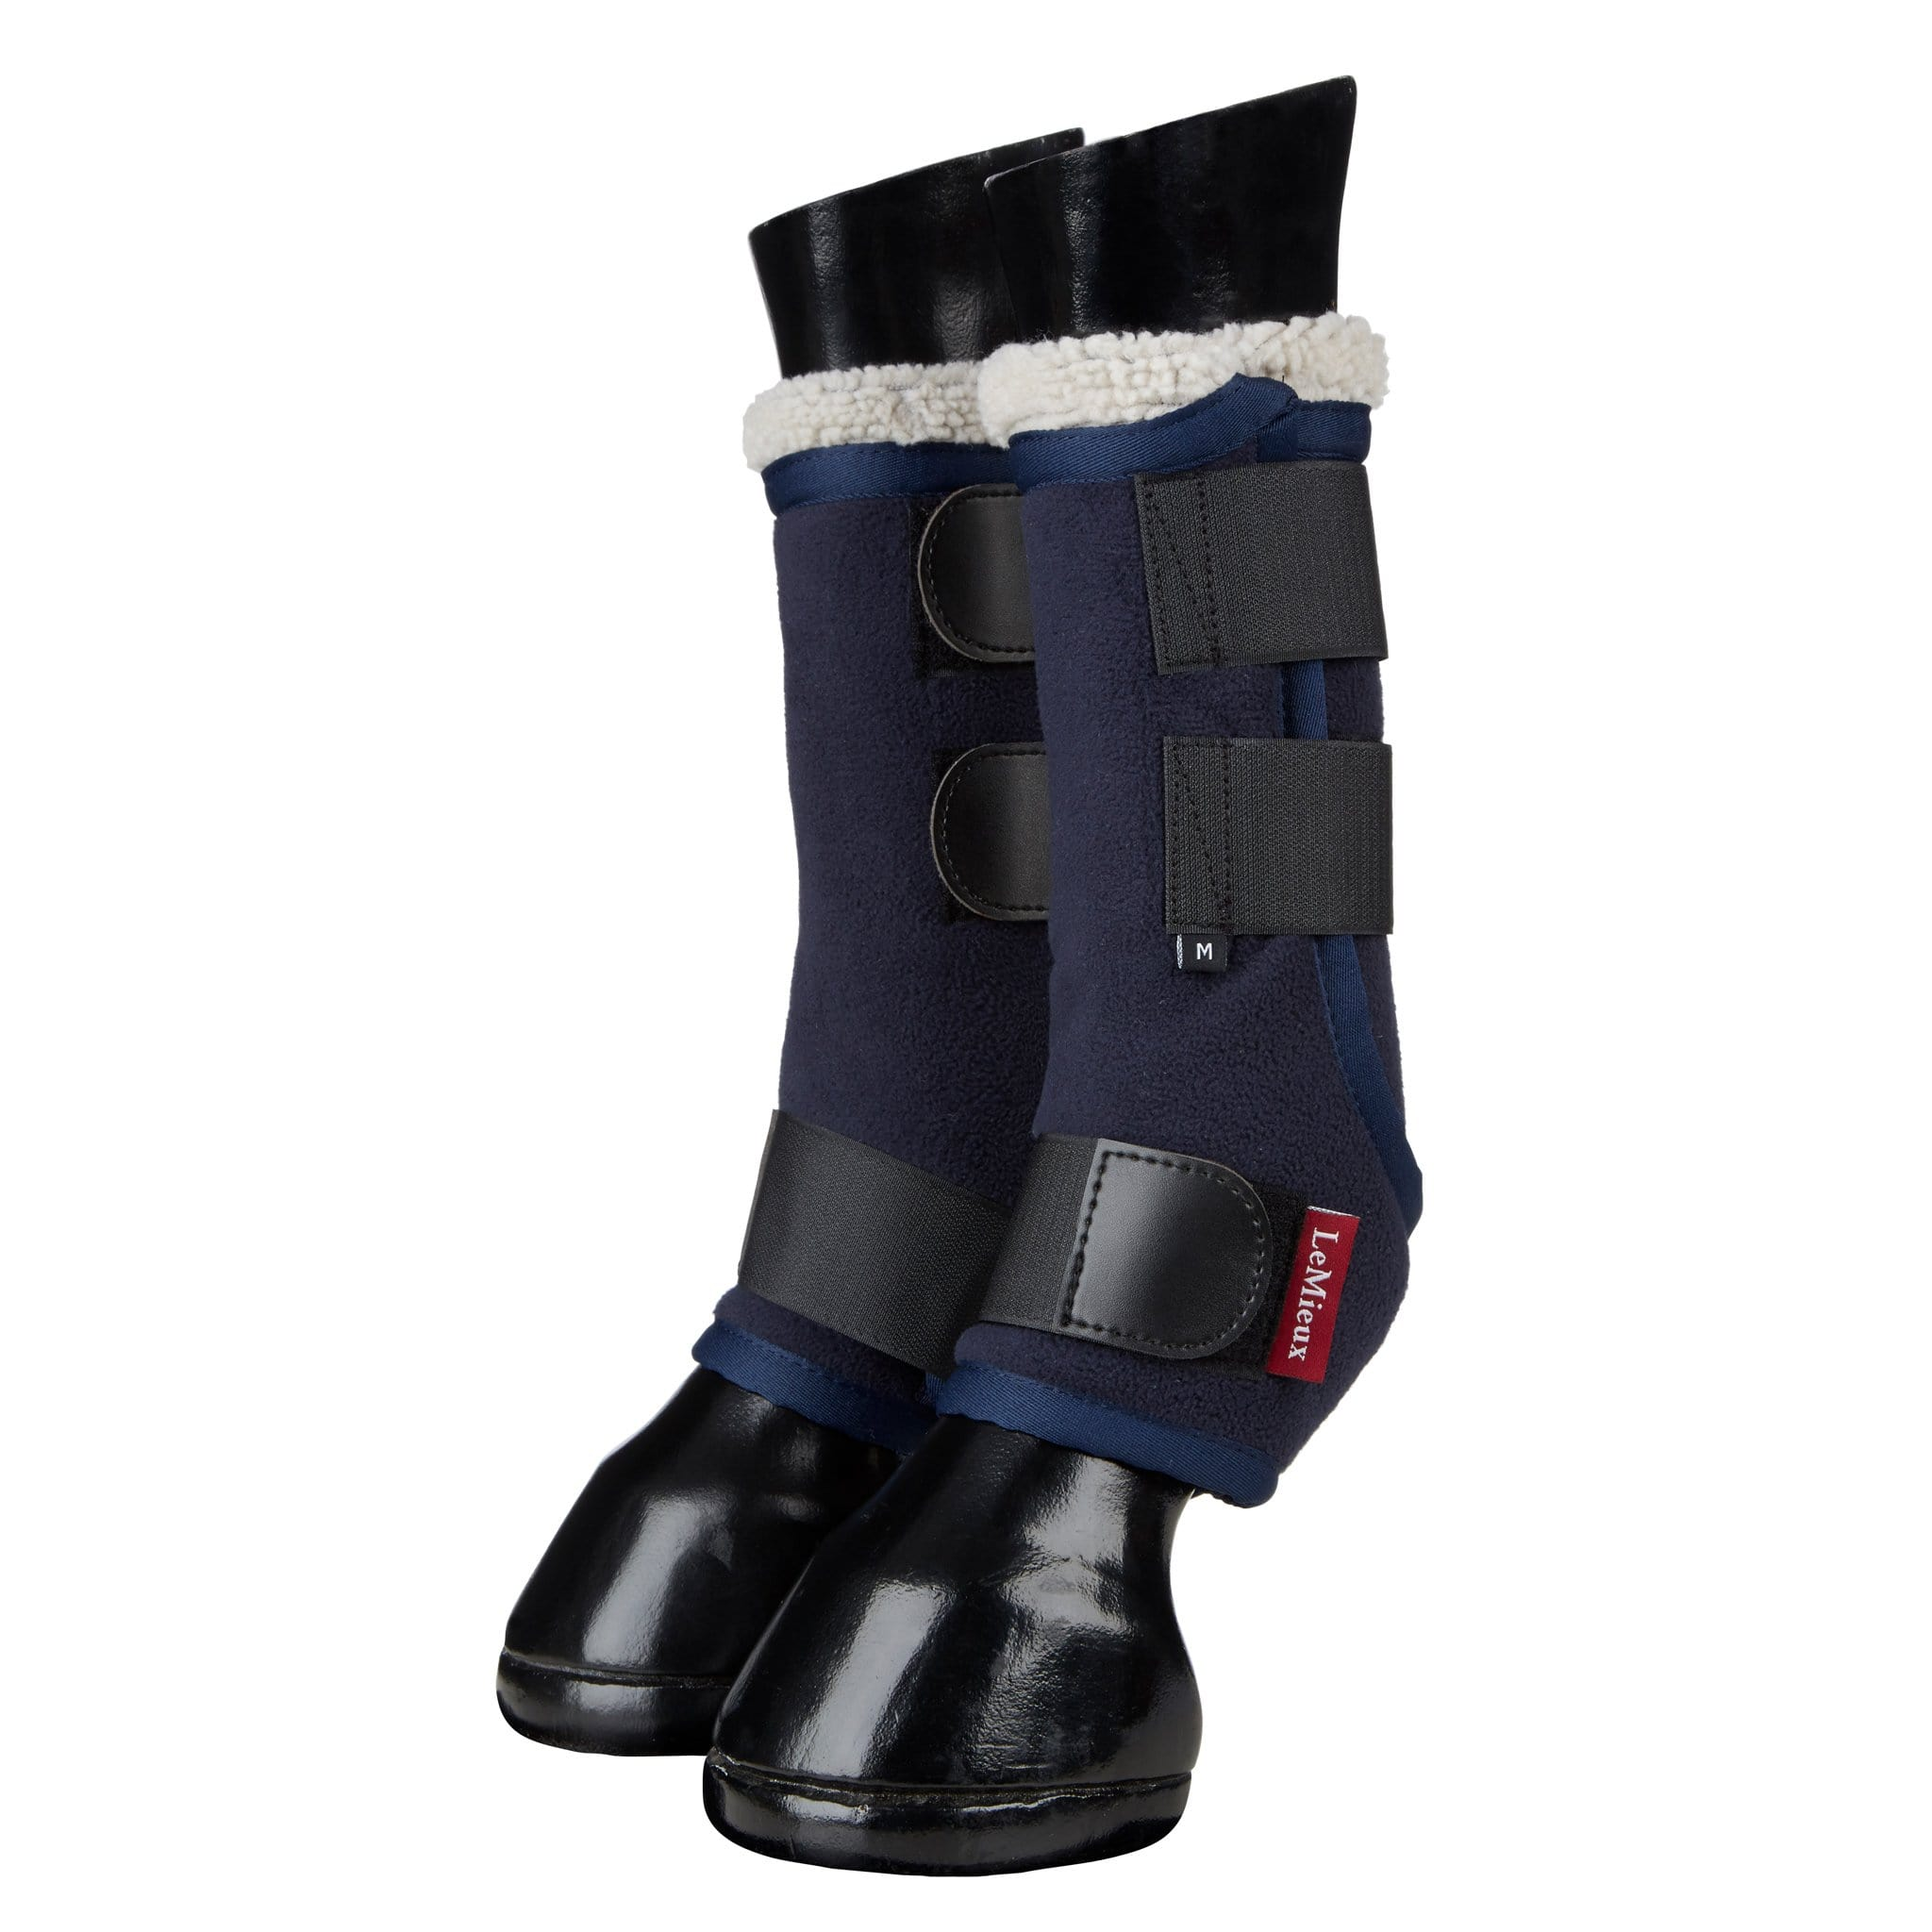 LeMieux Four Seasons Leg Wraps Navy 9929